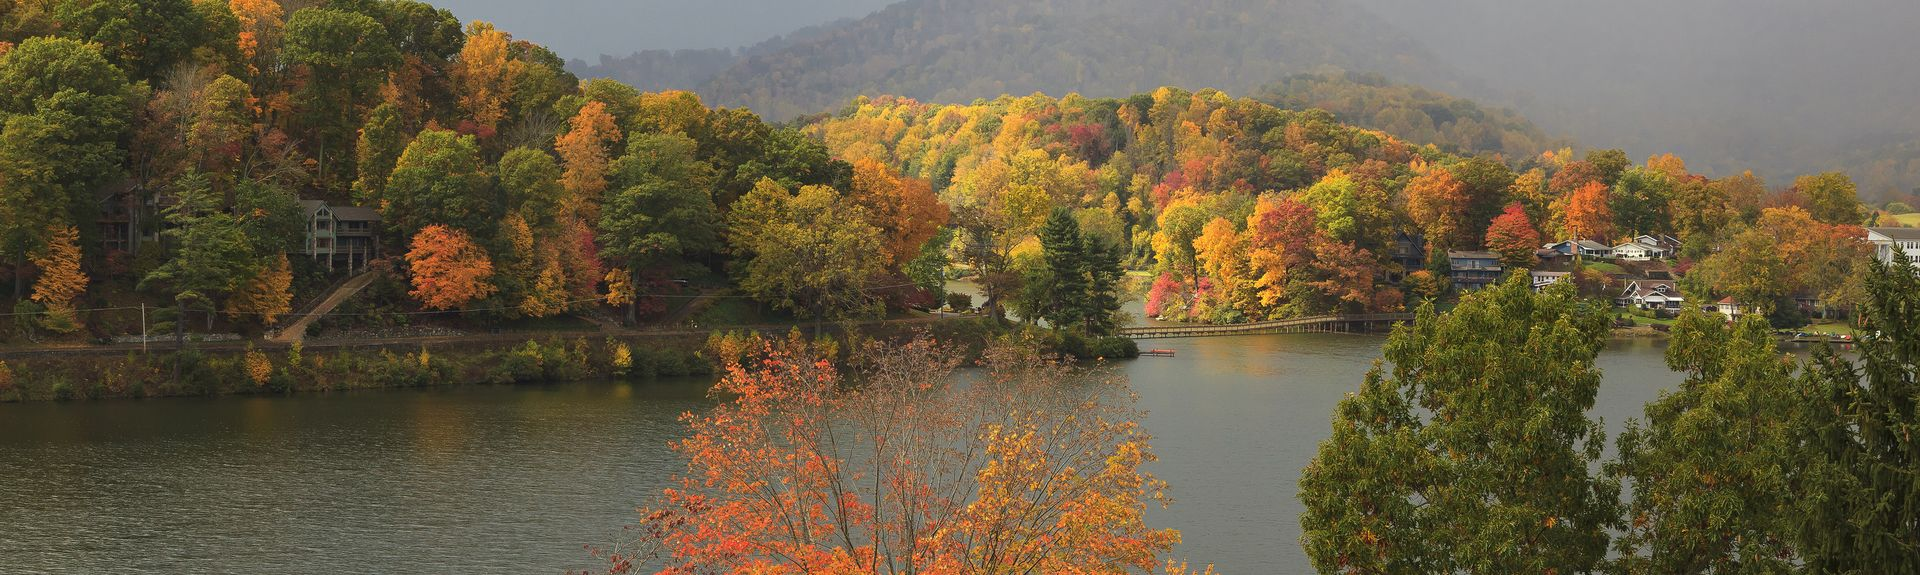 Lake Junaluska, North Carolina, United States of America